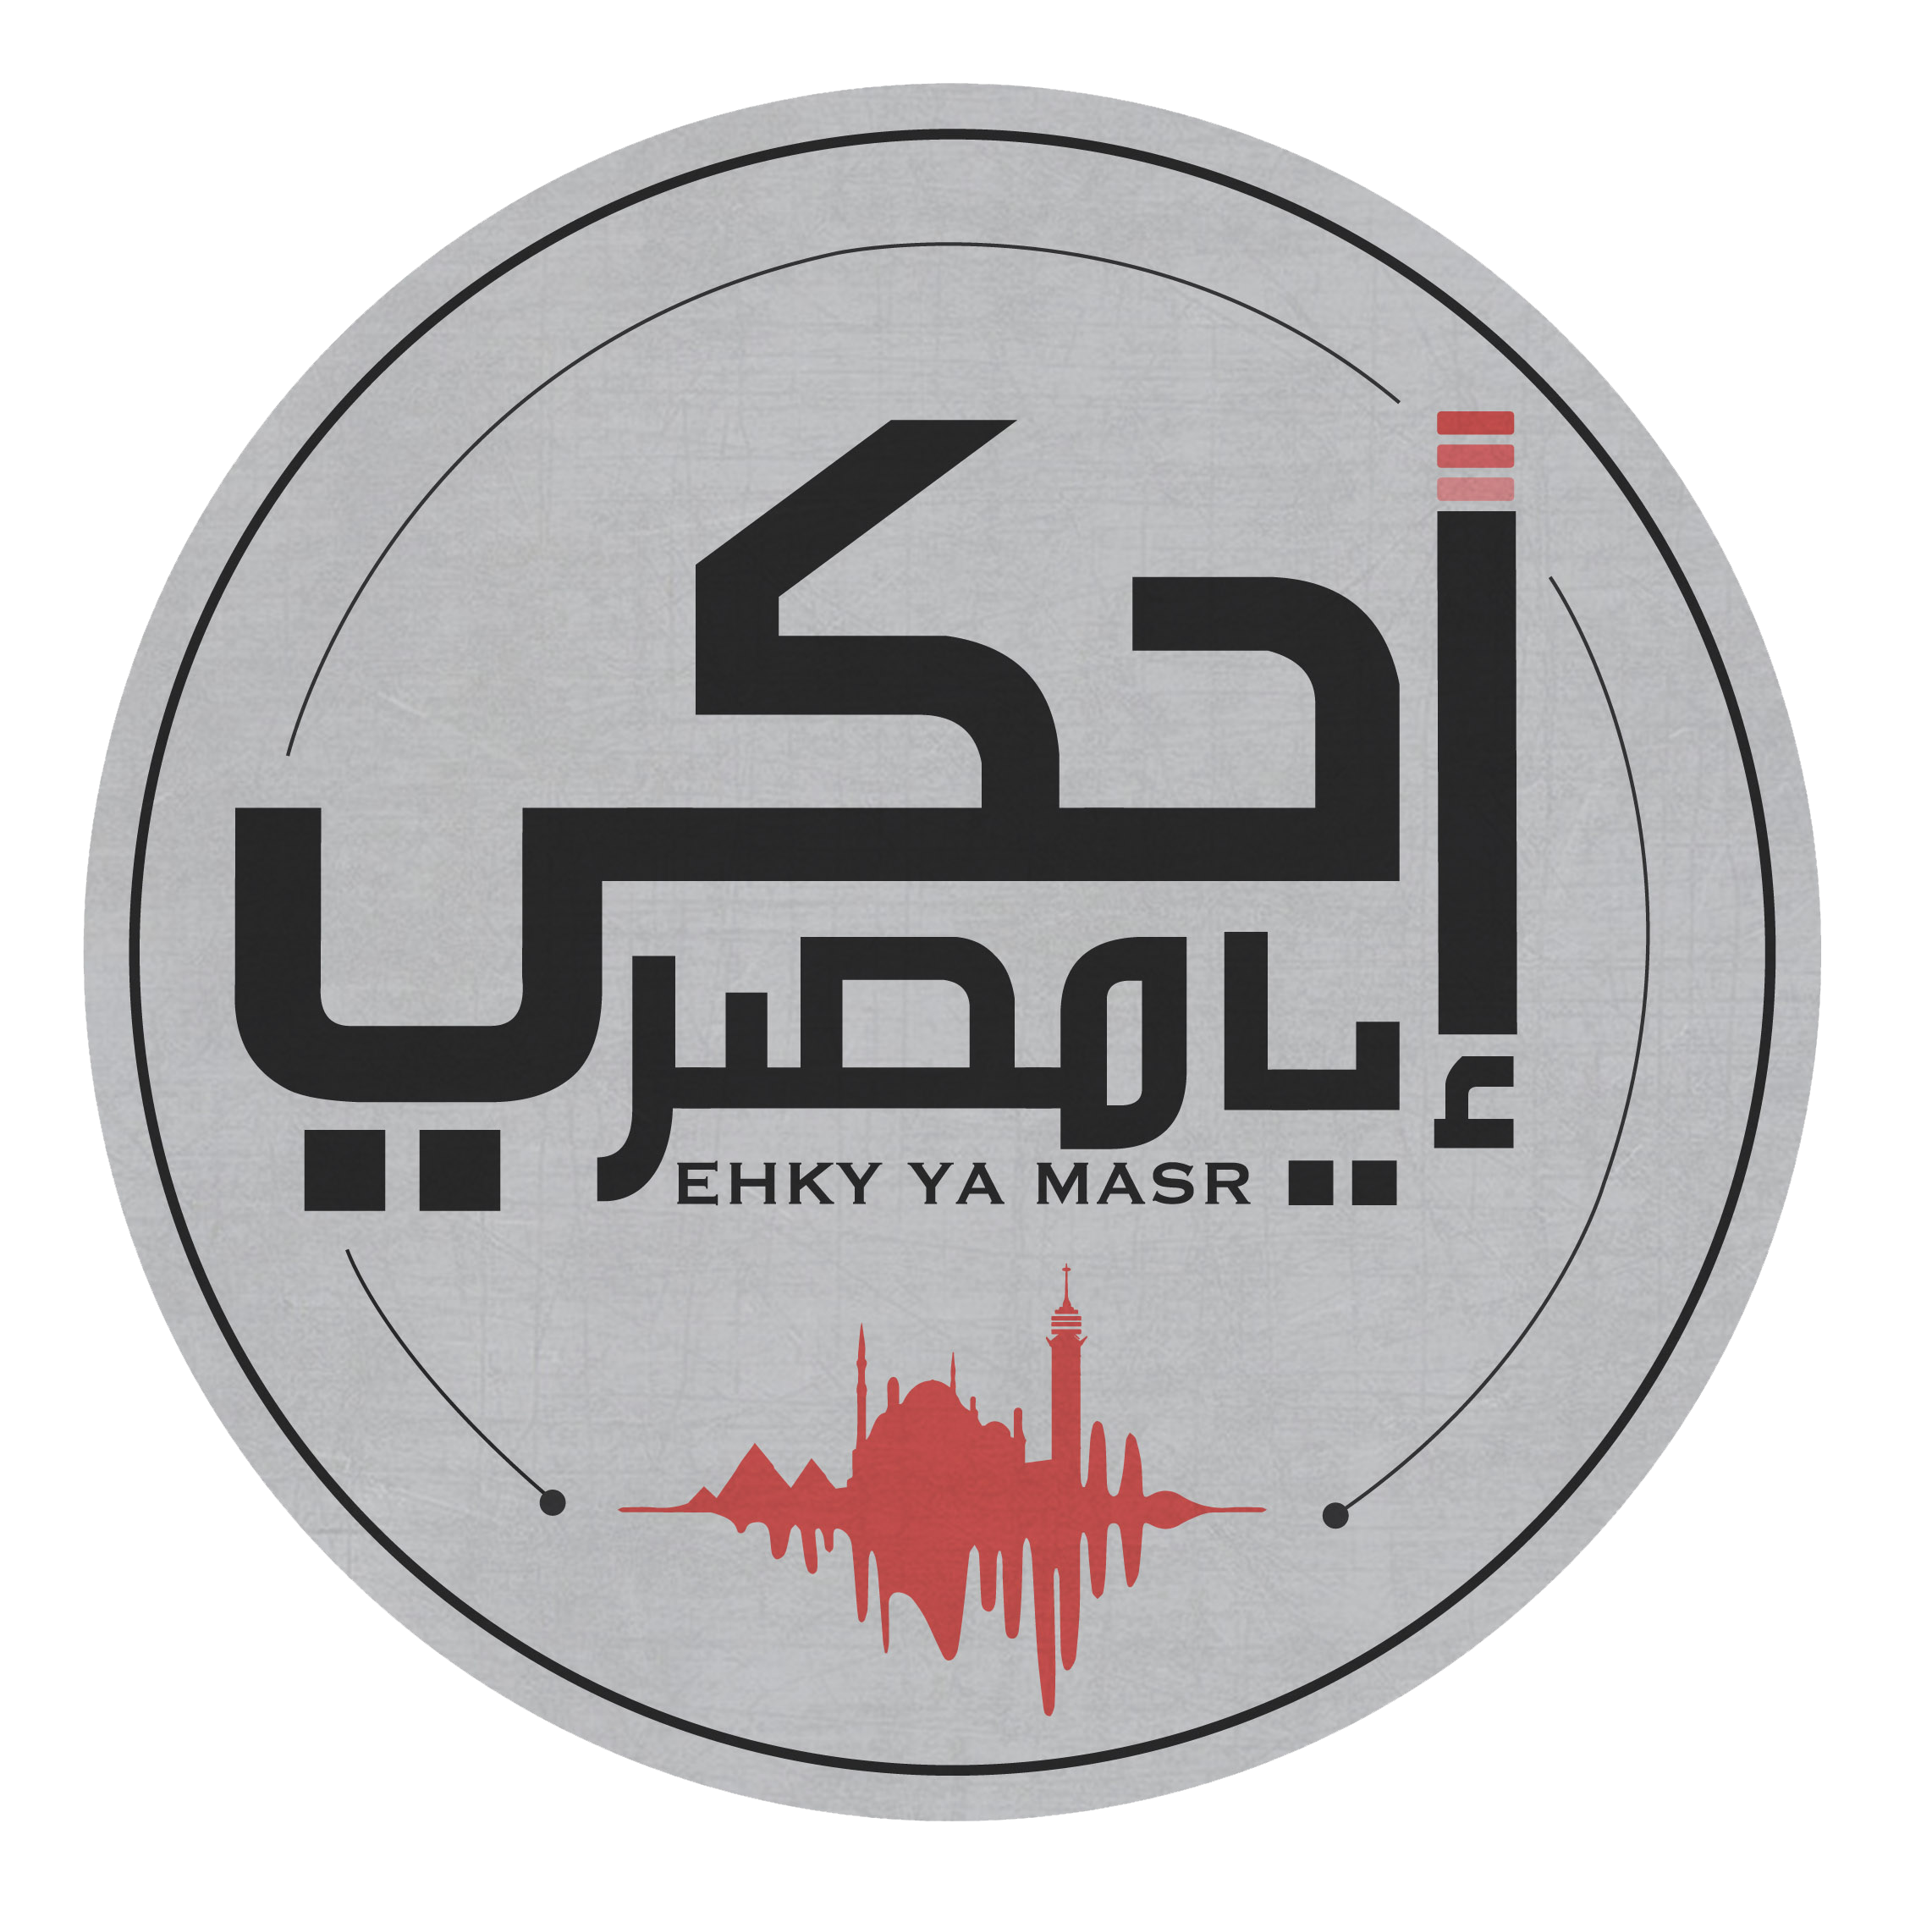 Caption: Ehky Ya Masr logo, Credit: Heba Fouad